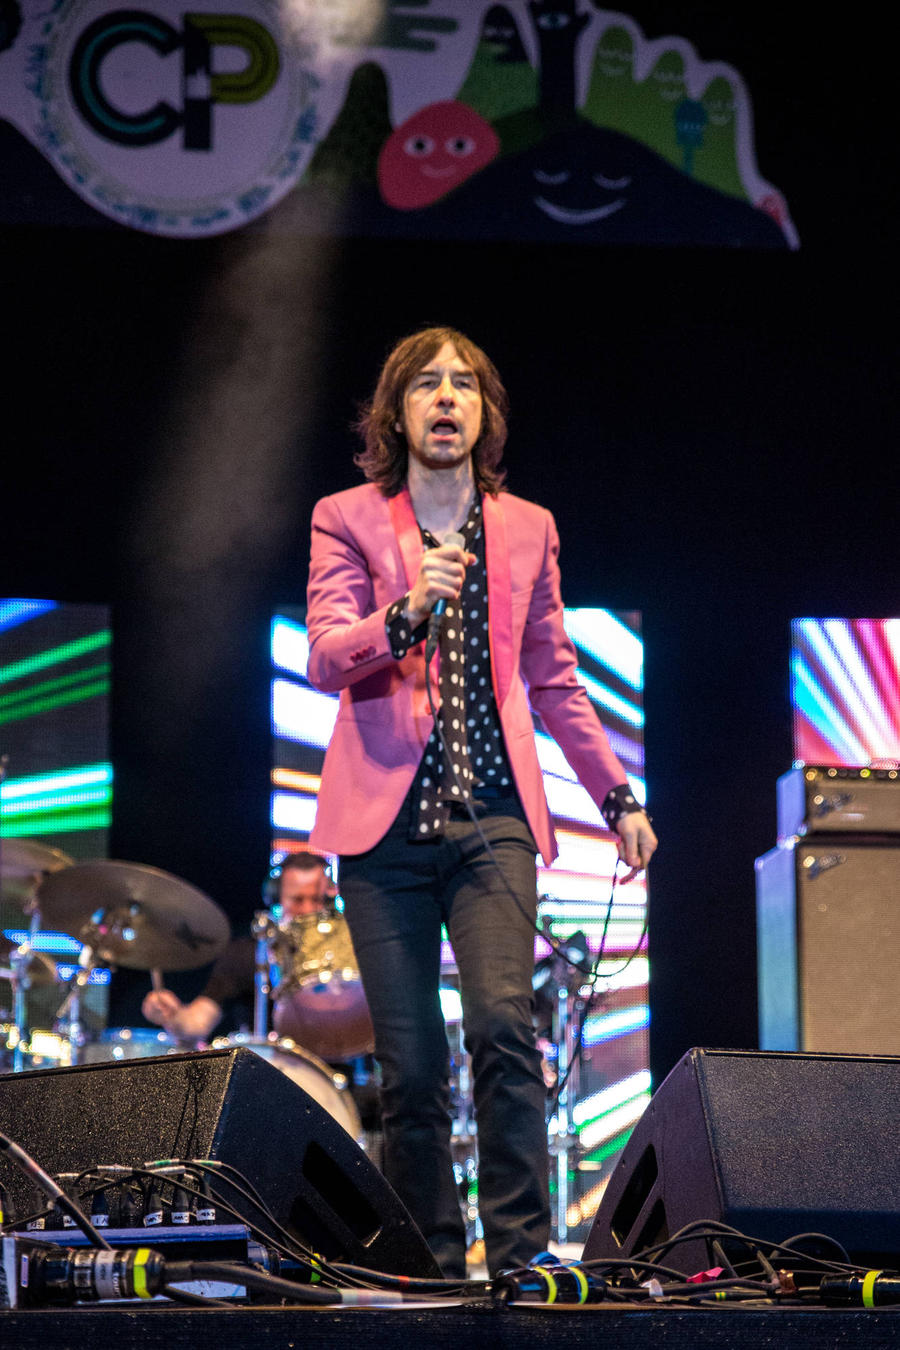 Bobby Gillespie Hospitalised After Stage Fall